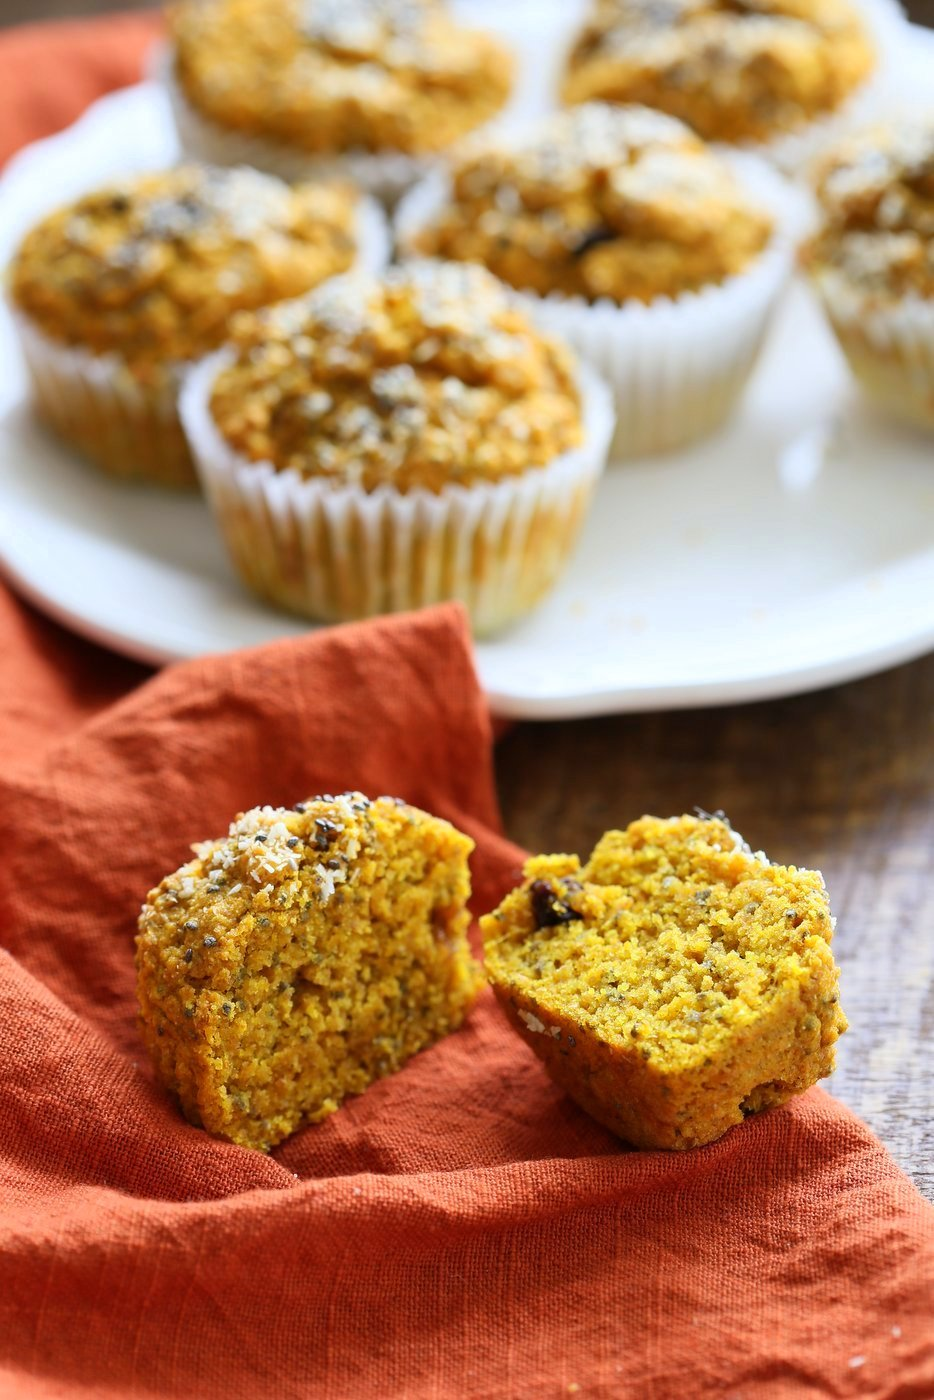 Turmeric Carrot Muffins. These sunshine muffins have carrots, dry or fresh turmeric, fresh ginger and chia seeds. Coconut rounds up the flavor for a caramelized carrot ginger turmeric profile. Add nuts or dried fruit of choice to these Turmeric muffins. No added sugar or oil needed. | VeganRicha.com